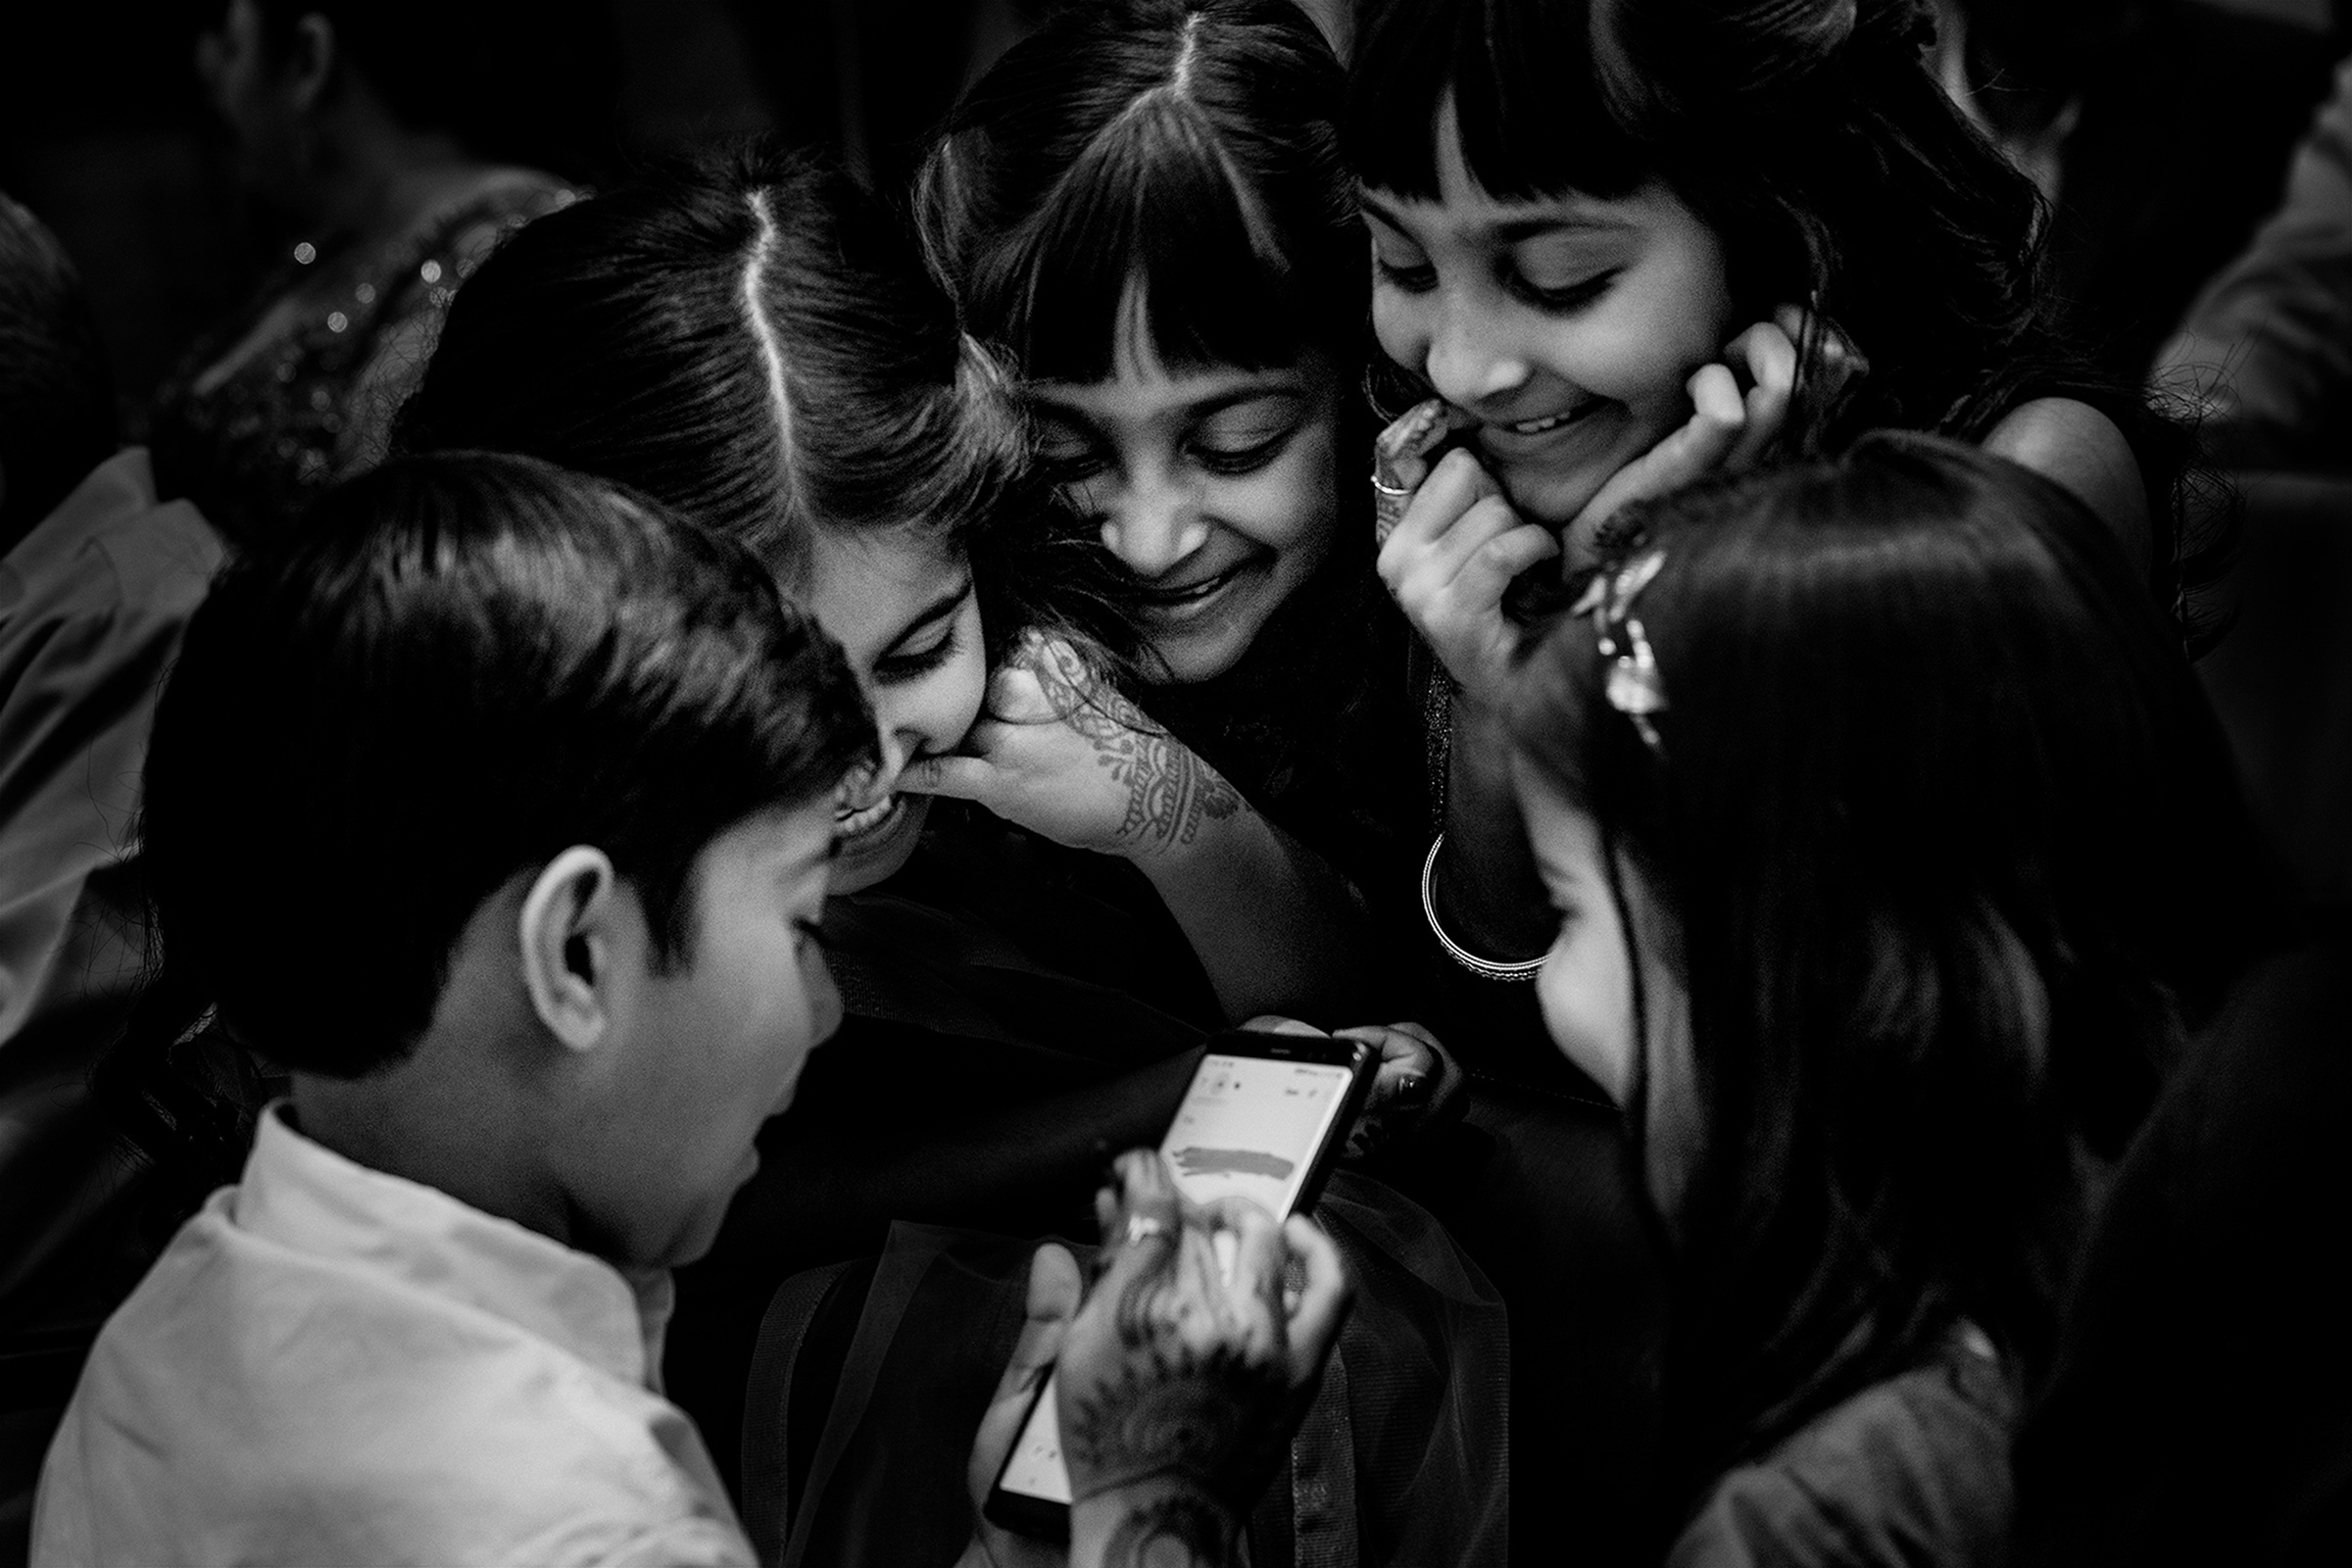 Children gather around phone - photo by Matei Horvath Photography